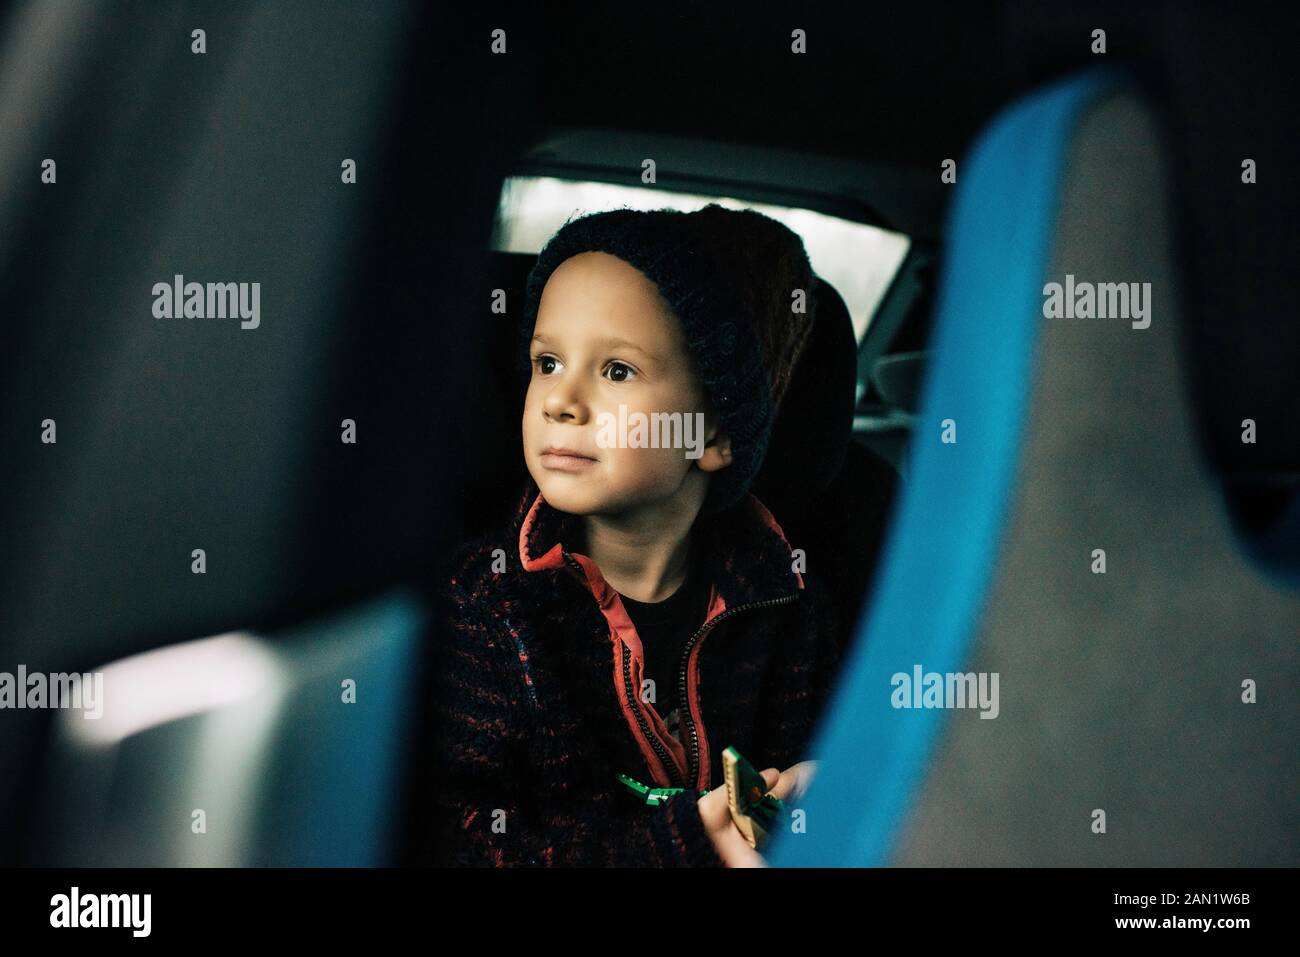 young boy sat in an electric car looking out the window Stock Photo